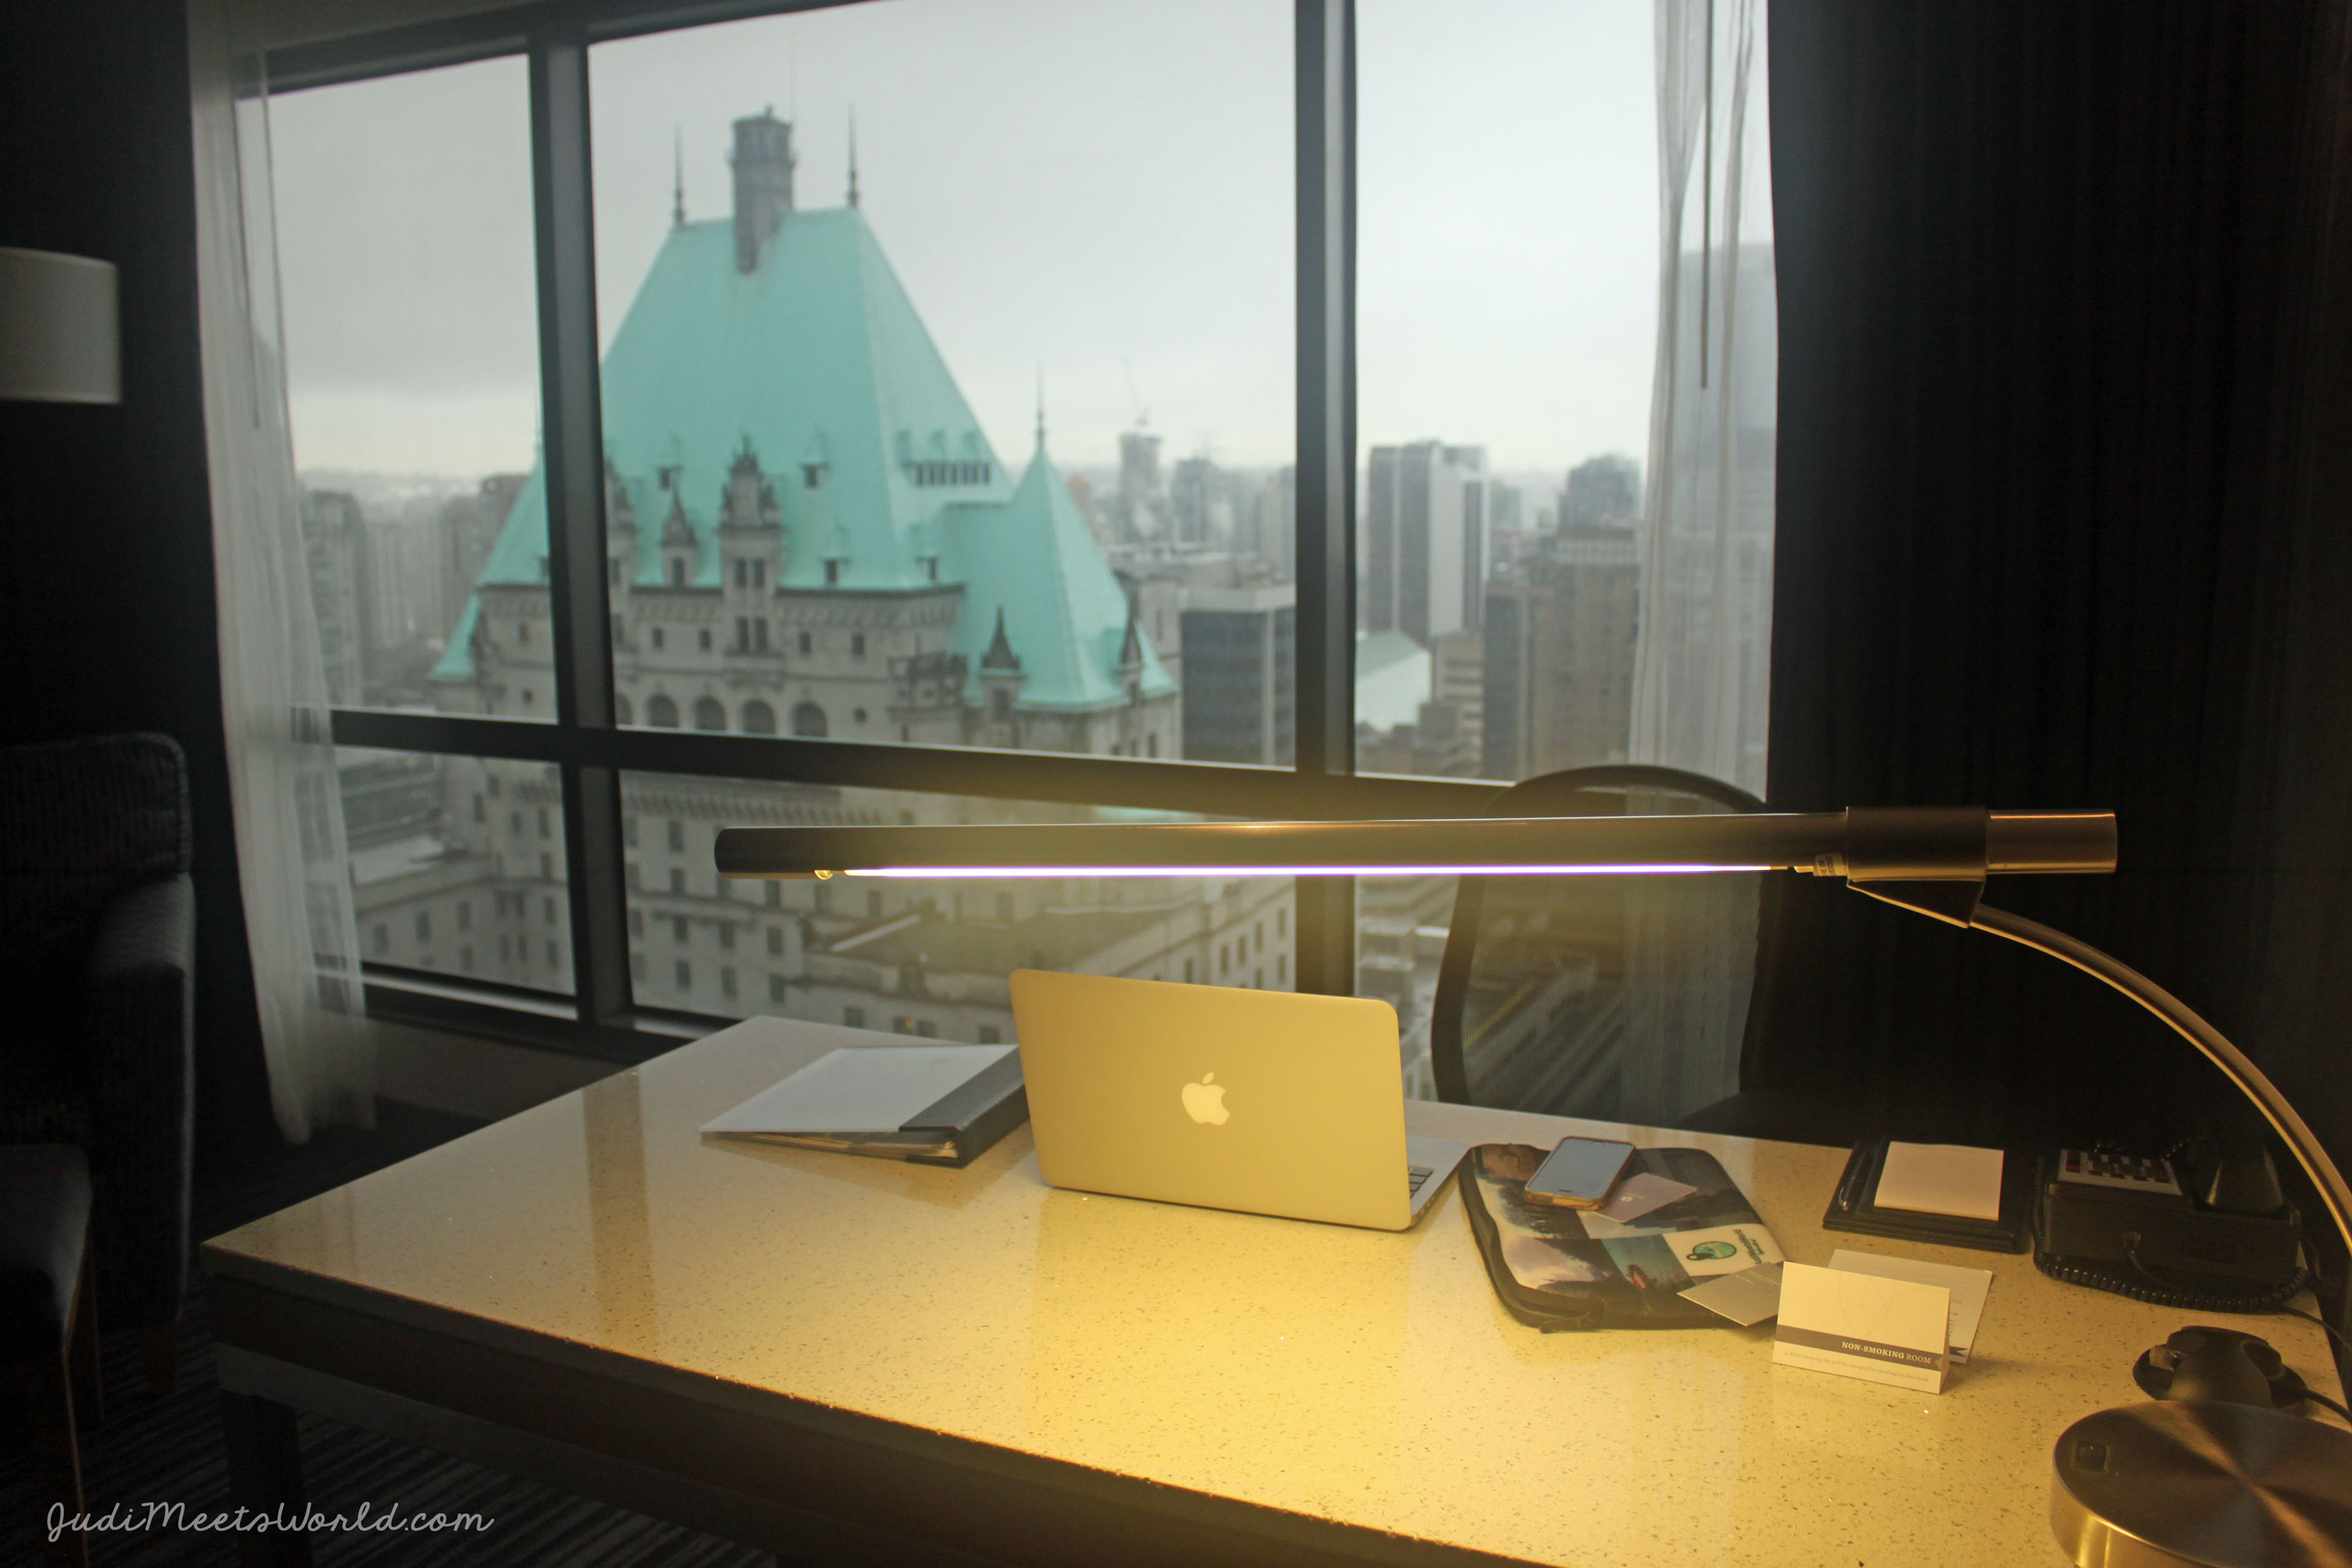 Meet the Hyatt Regency Vancouver.